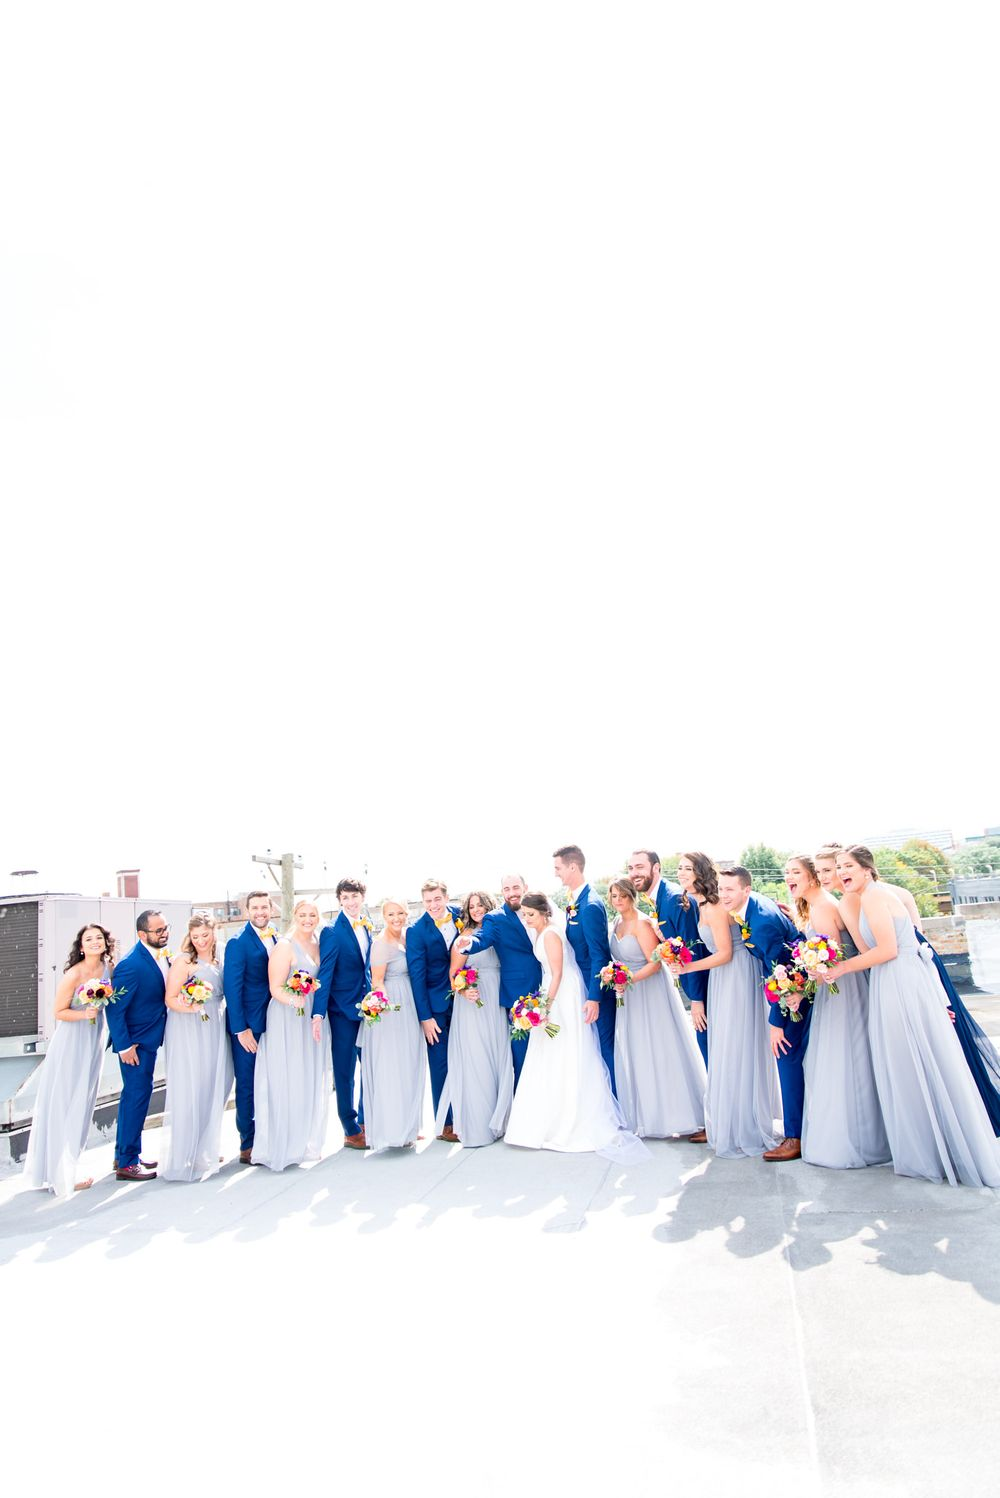 wedding party in light blue and navy blue on the rooftop of Room 1520 for a fall wedding